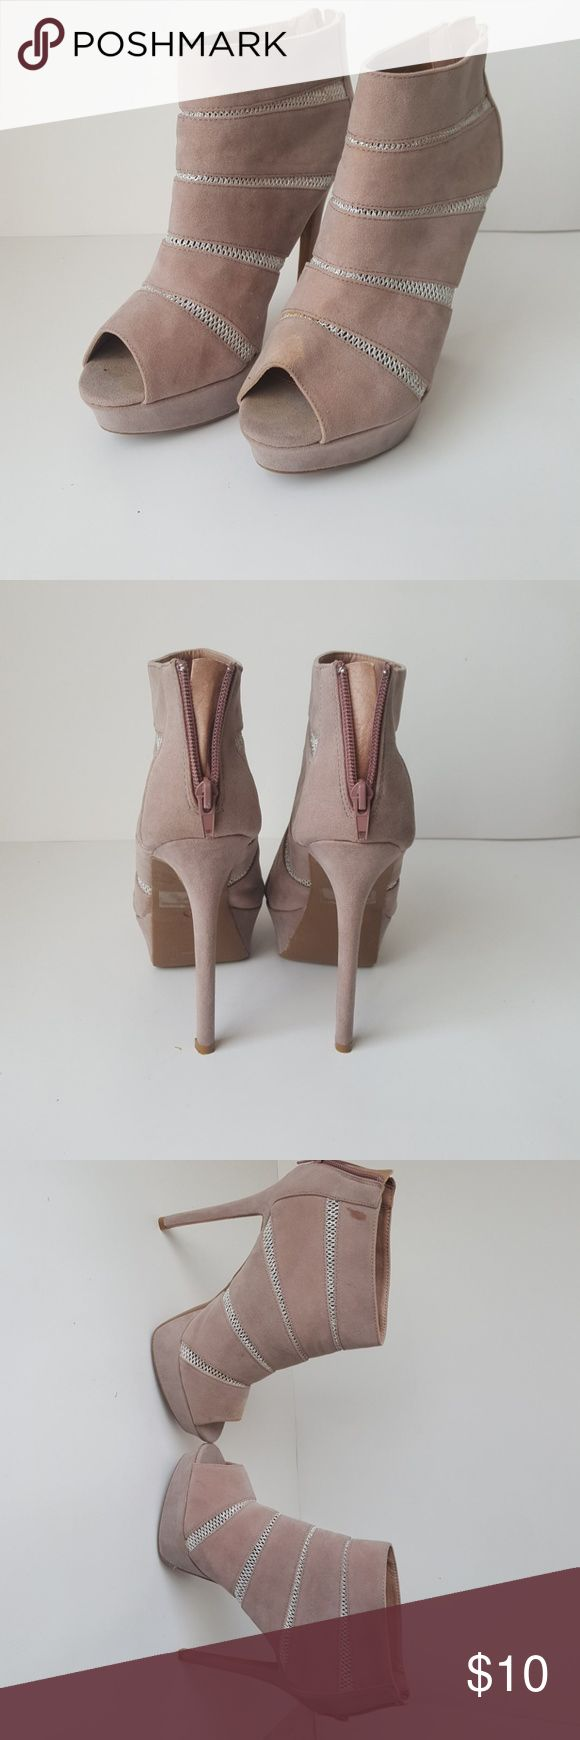 10 Dollar Charlotte Russe High Heels They high heels are very cute for both something casual and fancy. They lace in between the shoe are not bothersome when you wear it and they stand out at night. The insides do have padding. There are a few stains on them. The texture is a faux suede material and it goes around the whole shoe. Room for bargaining. Charlotte Russe Shoes Heeled Boots